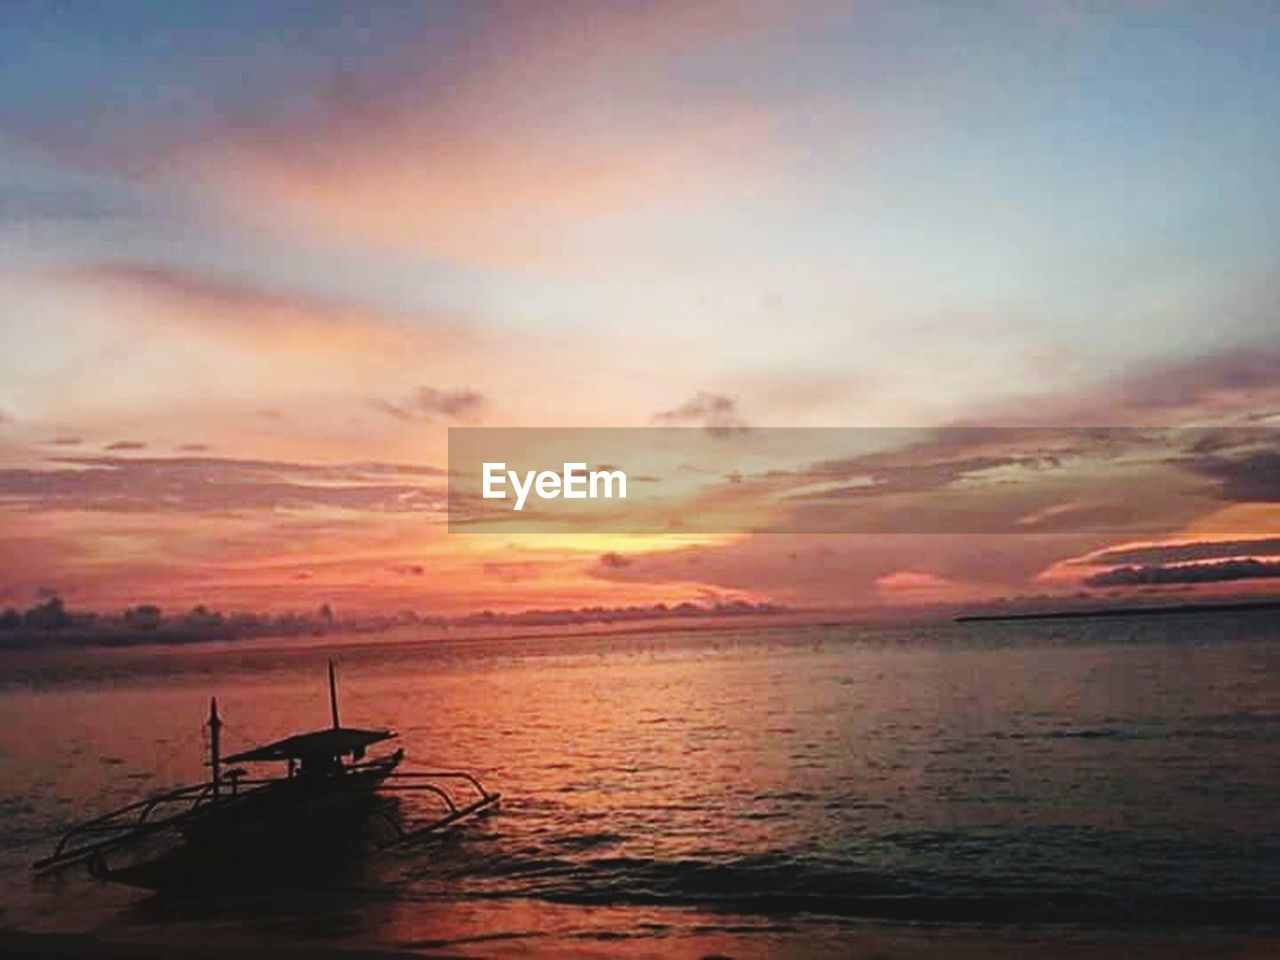 sunset, water, sea, beauty in nature, nature, scenics, tranquility, sky, cloud - sky, silhouette, beach, no people, outdoors, nautical vessel, horizon over water